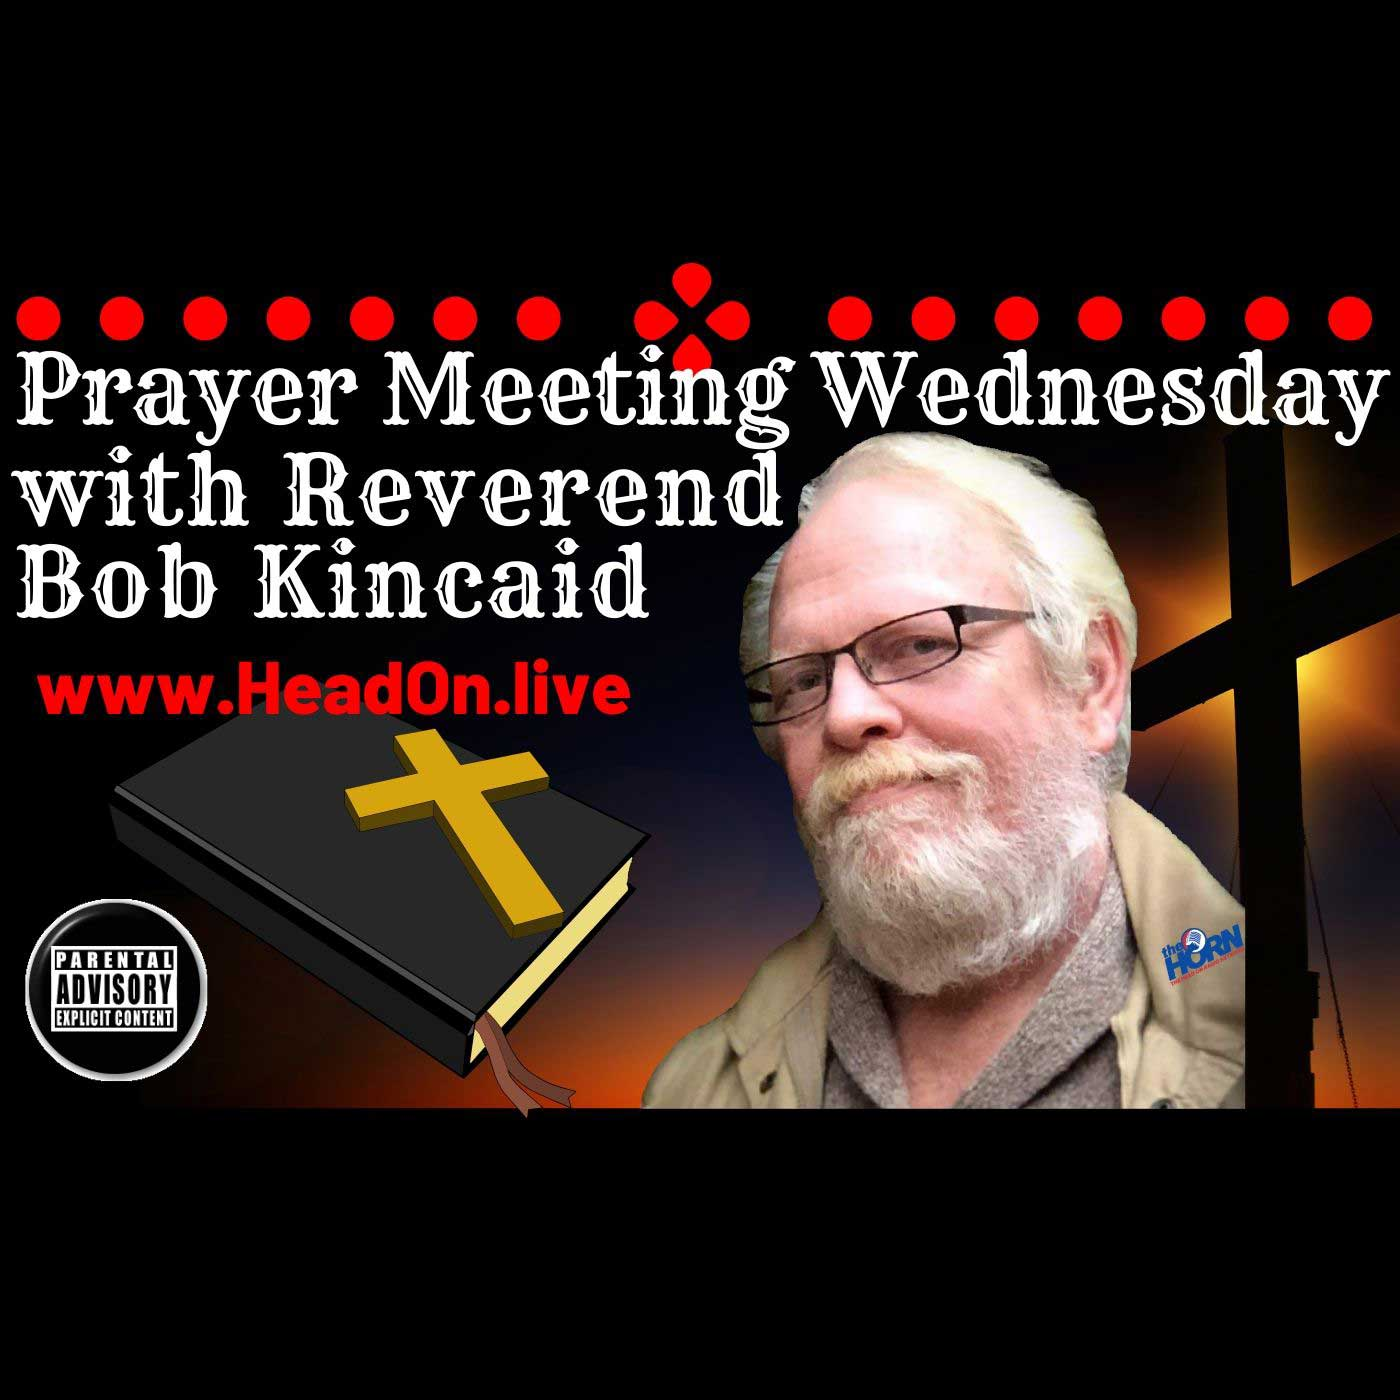 Prayer Meetinorona Wednesday, Head-ON With Bob Kincaid, 17 June 2020